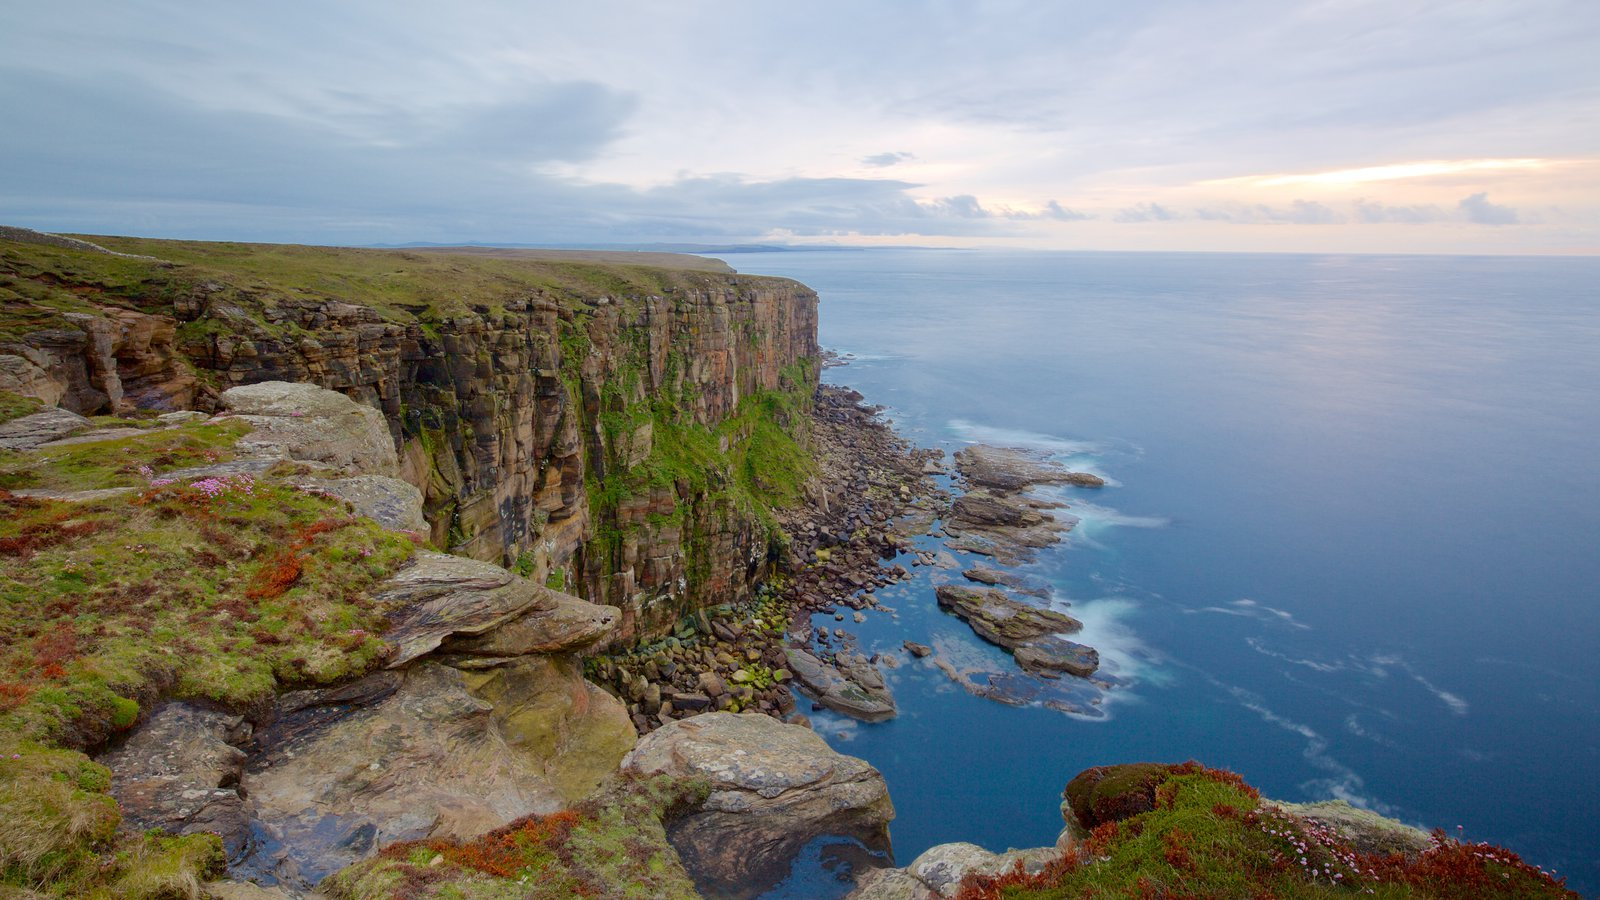 Dunnet Head Lighthouse showing rugged coastline